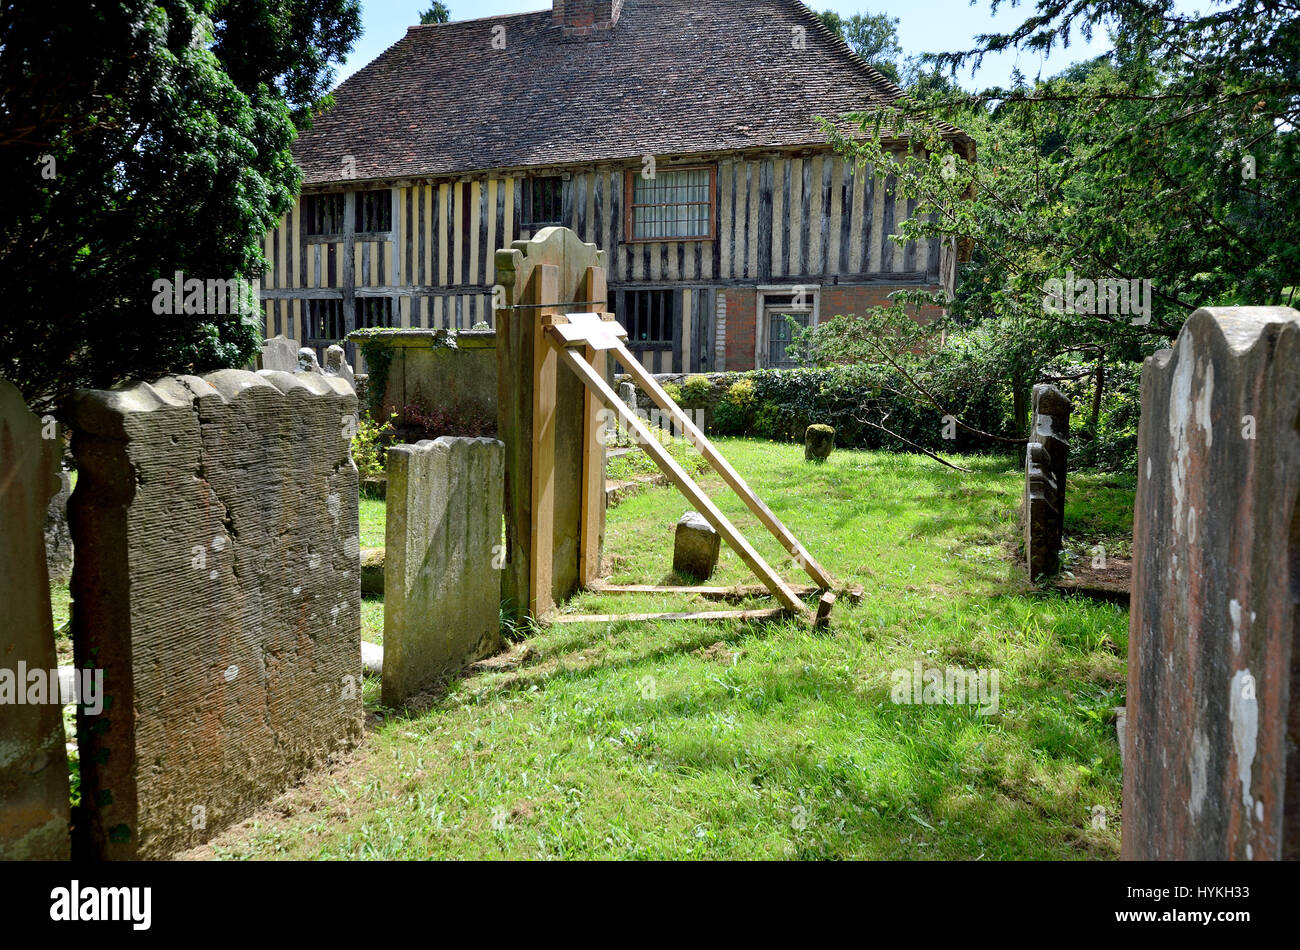 Loose Village, Maidstone, Kent, UK. Unsafe gravestone propped up with a wooden support in All Saints churchyard - Stock Image